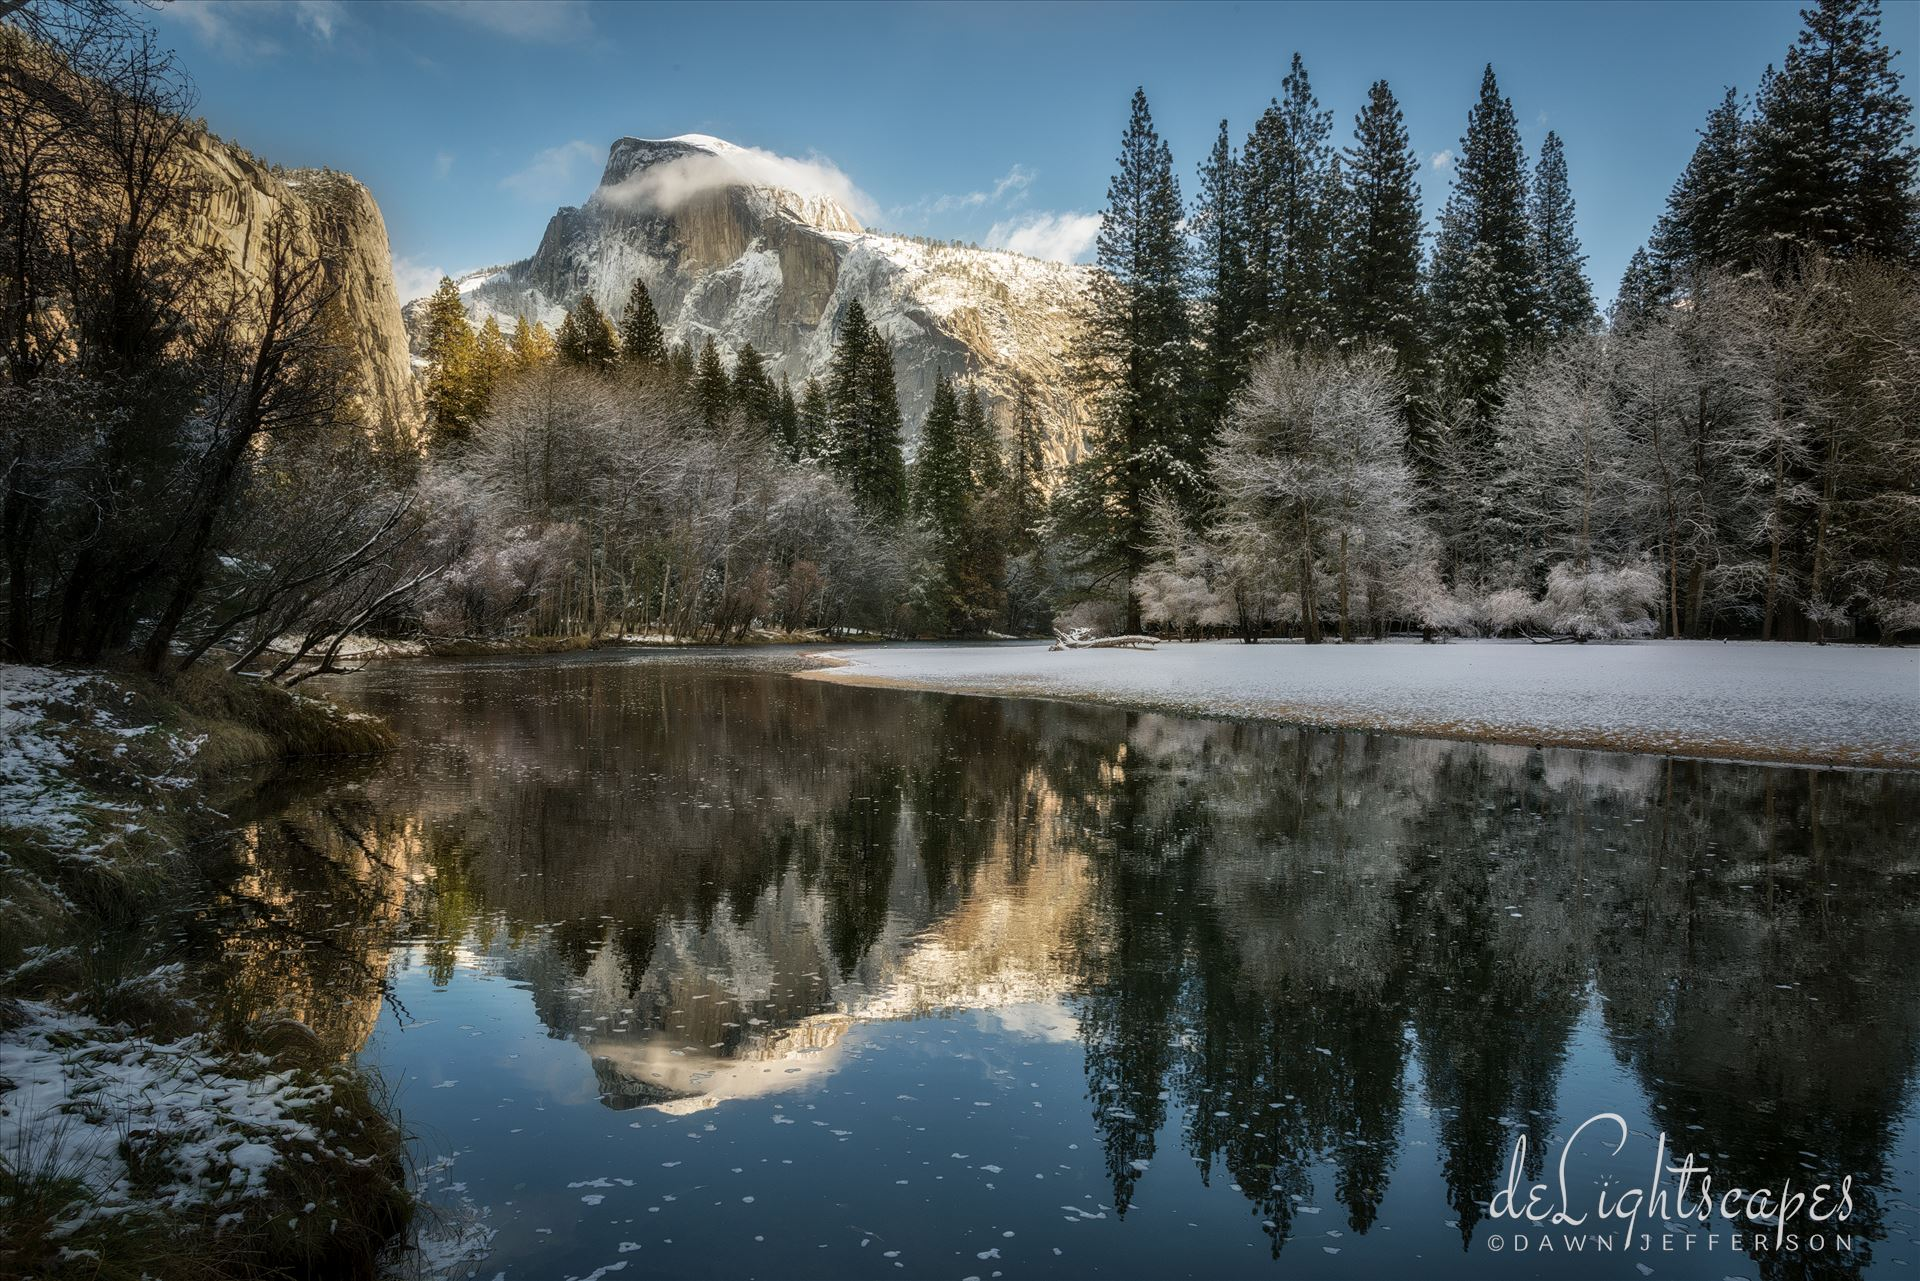 Reflecting on Half Dome in Winter - Yosemite National Park in winter is magical, especially when you can catch Half Dome reflecting so nicely on the Merced River. by Dawn Jefferson